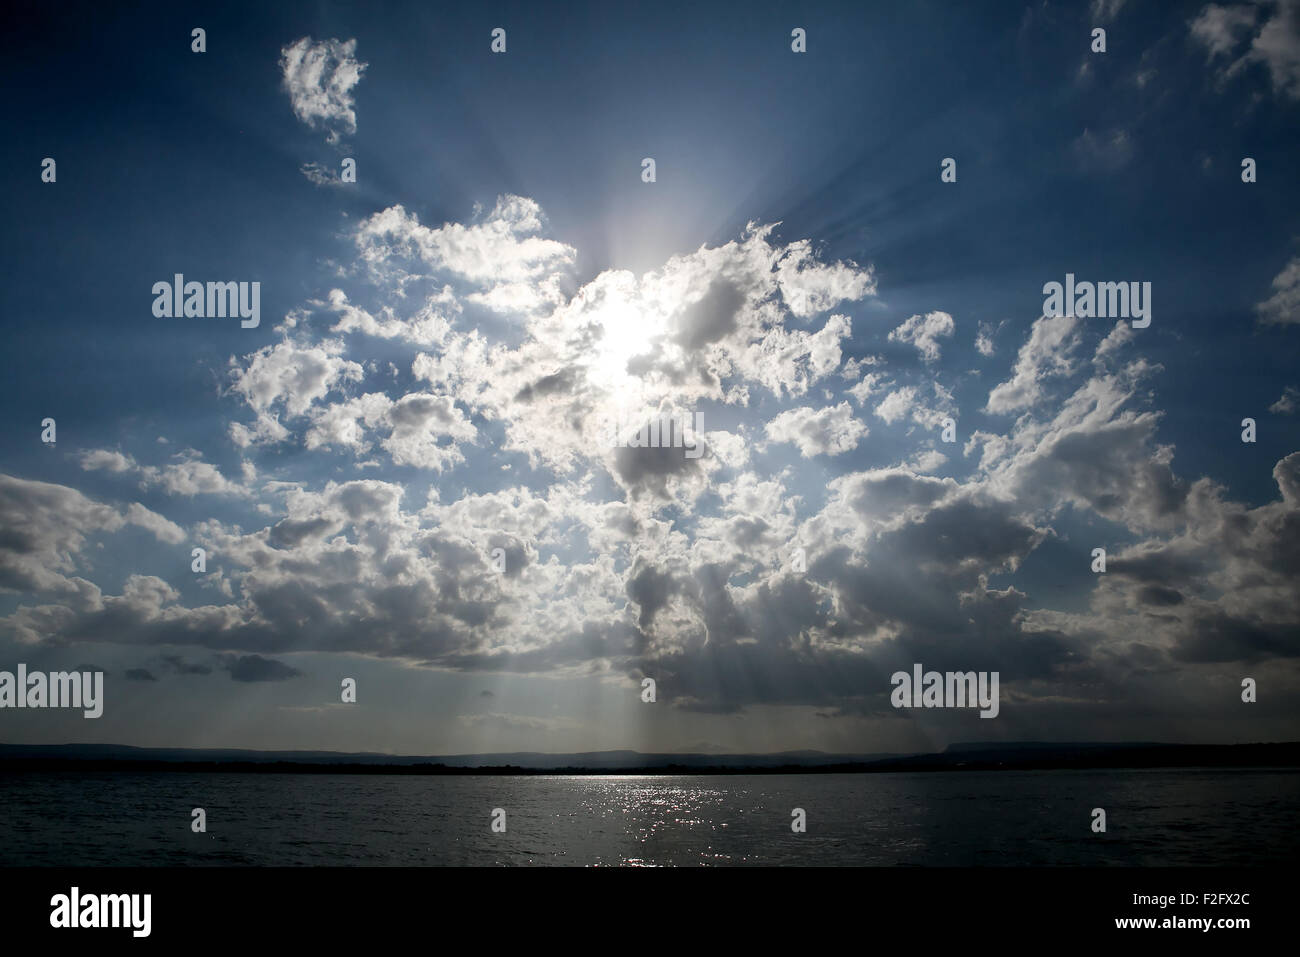 Blue sky with dramatic clouds and sun beams - Stock Image